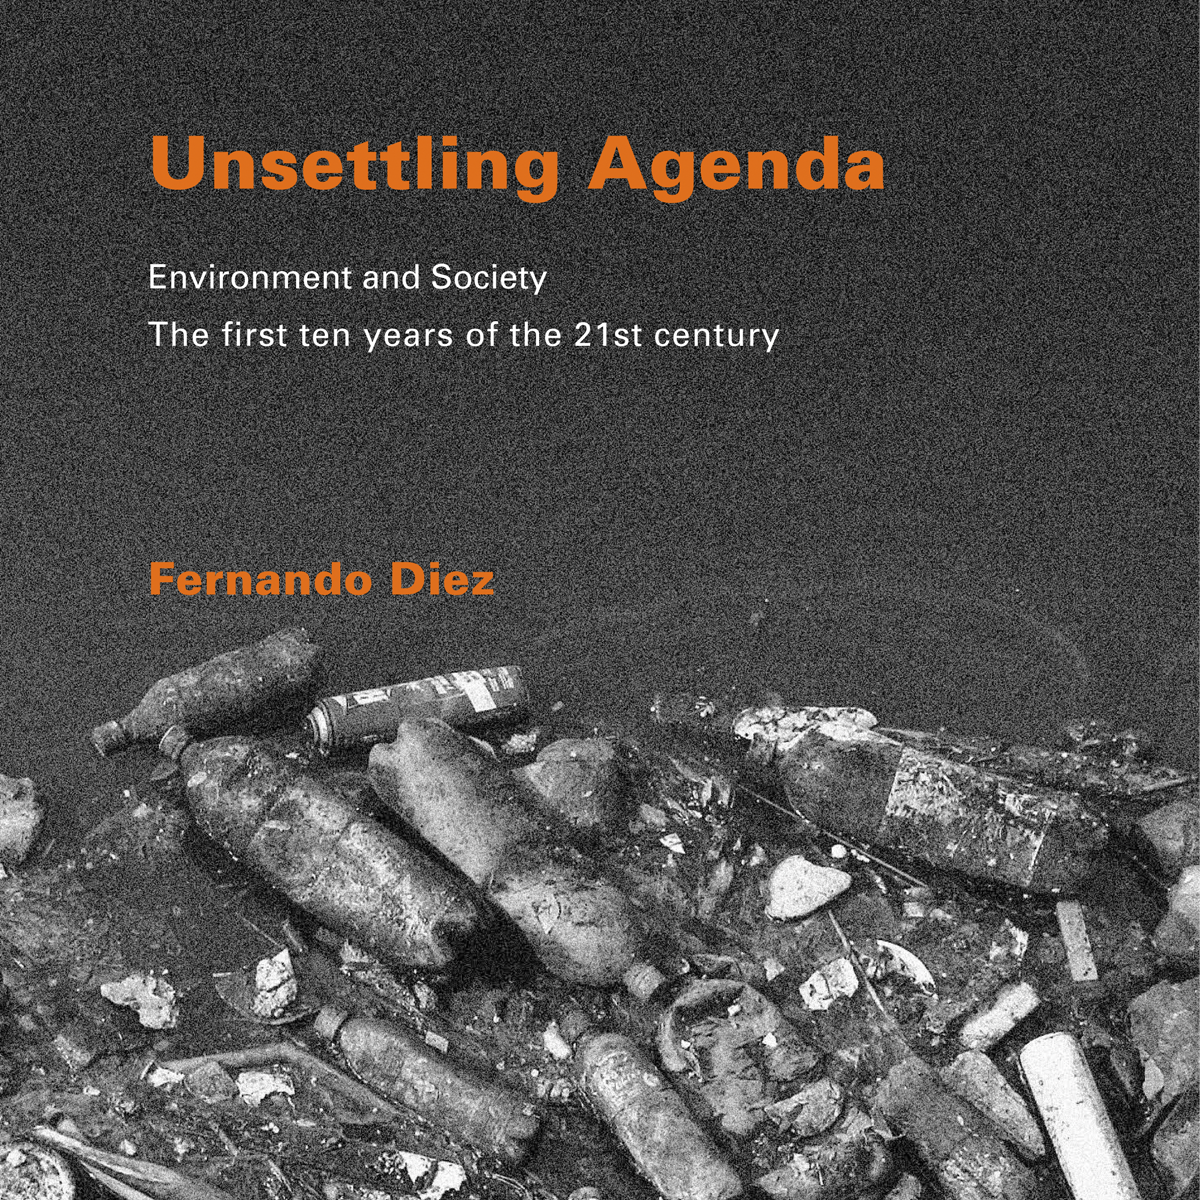 Unsettling Agenda:  Environment and Society